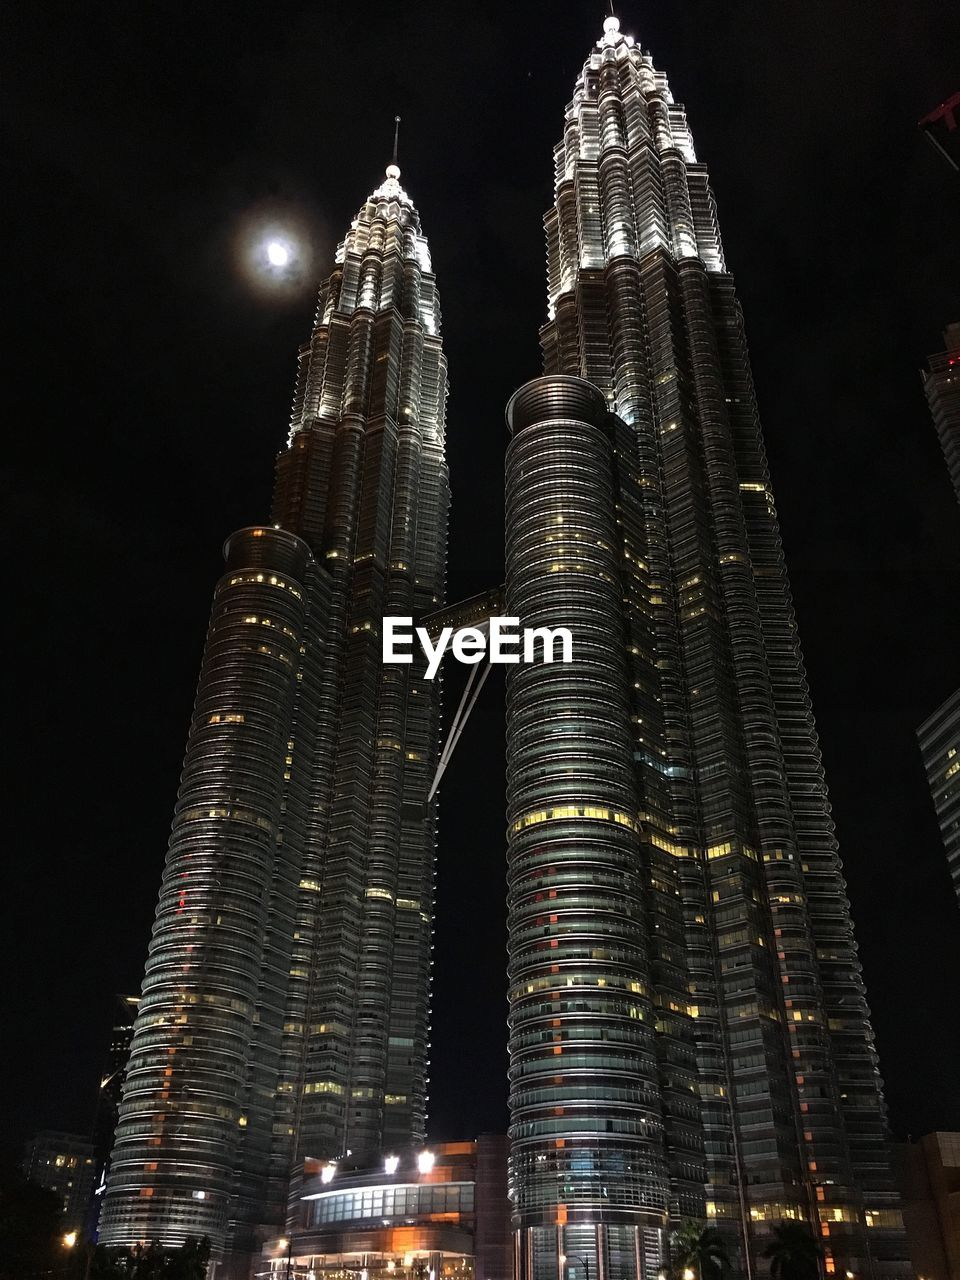 night, architecture, building exterior, built structure, illuminated, tall - high, building, city, low angle view, office building exterior, skyscraper, tower, no people, modern, travel destinations, sky, office, nature, outdoors, financial district, spire